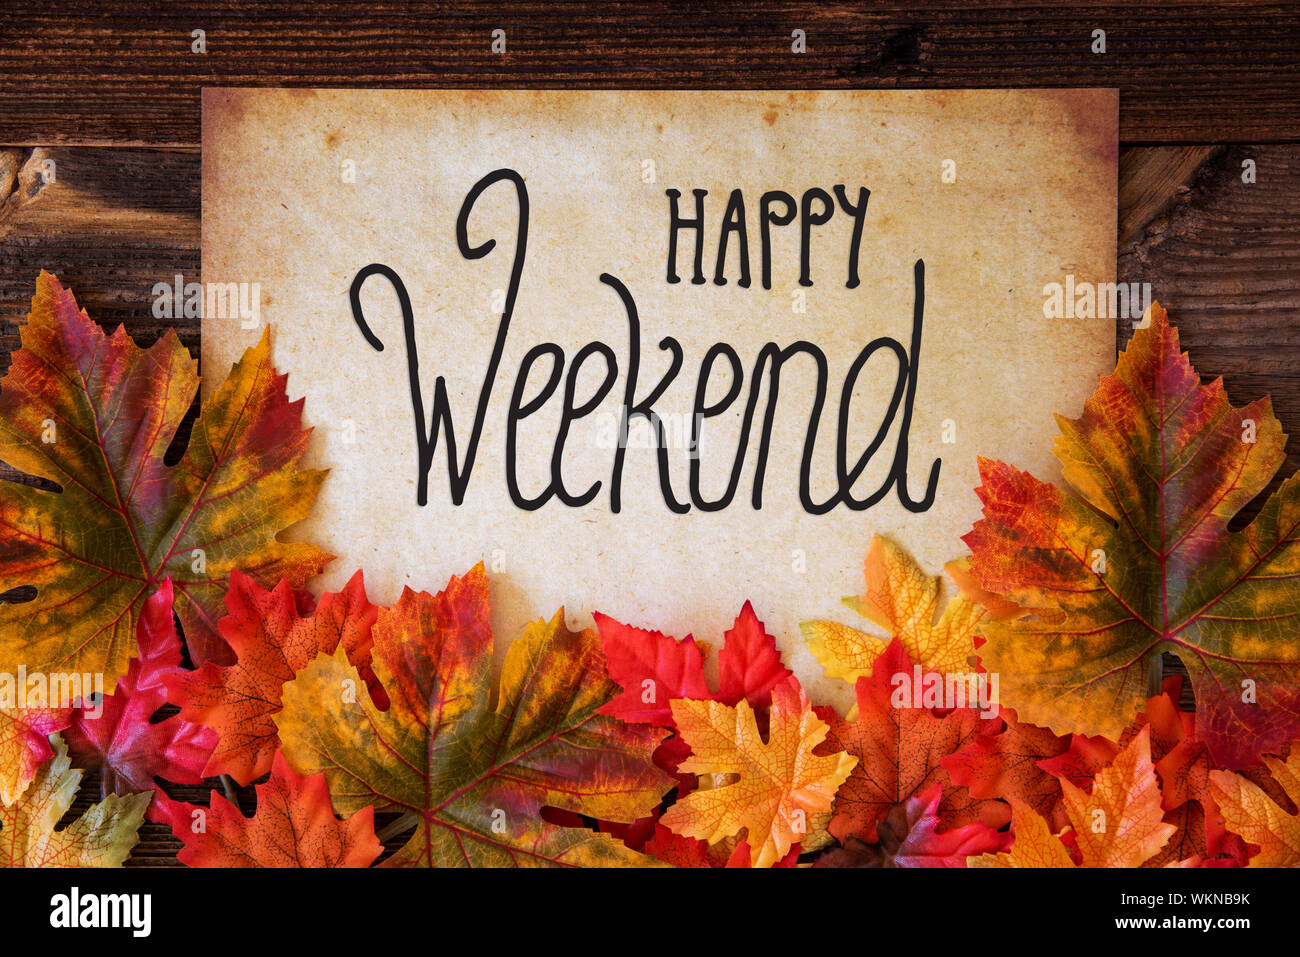 Old Paper With Text Happy Weekend Colorful Leaves Decoration Stock Photo Alamy